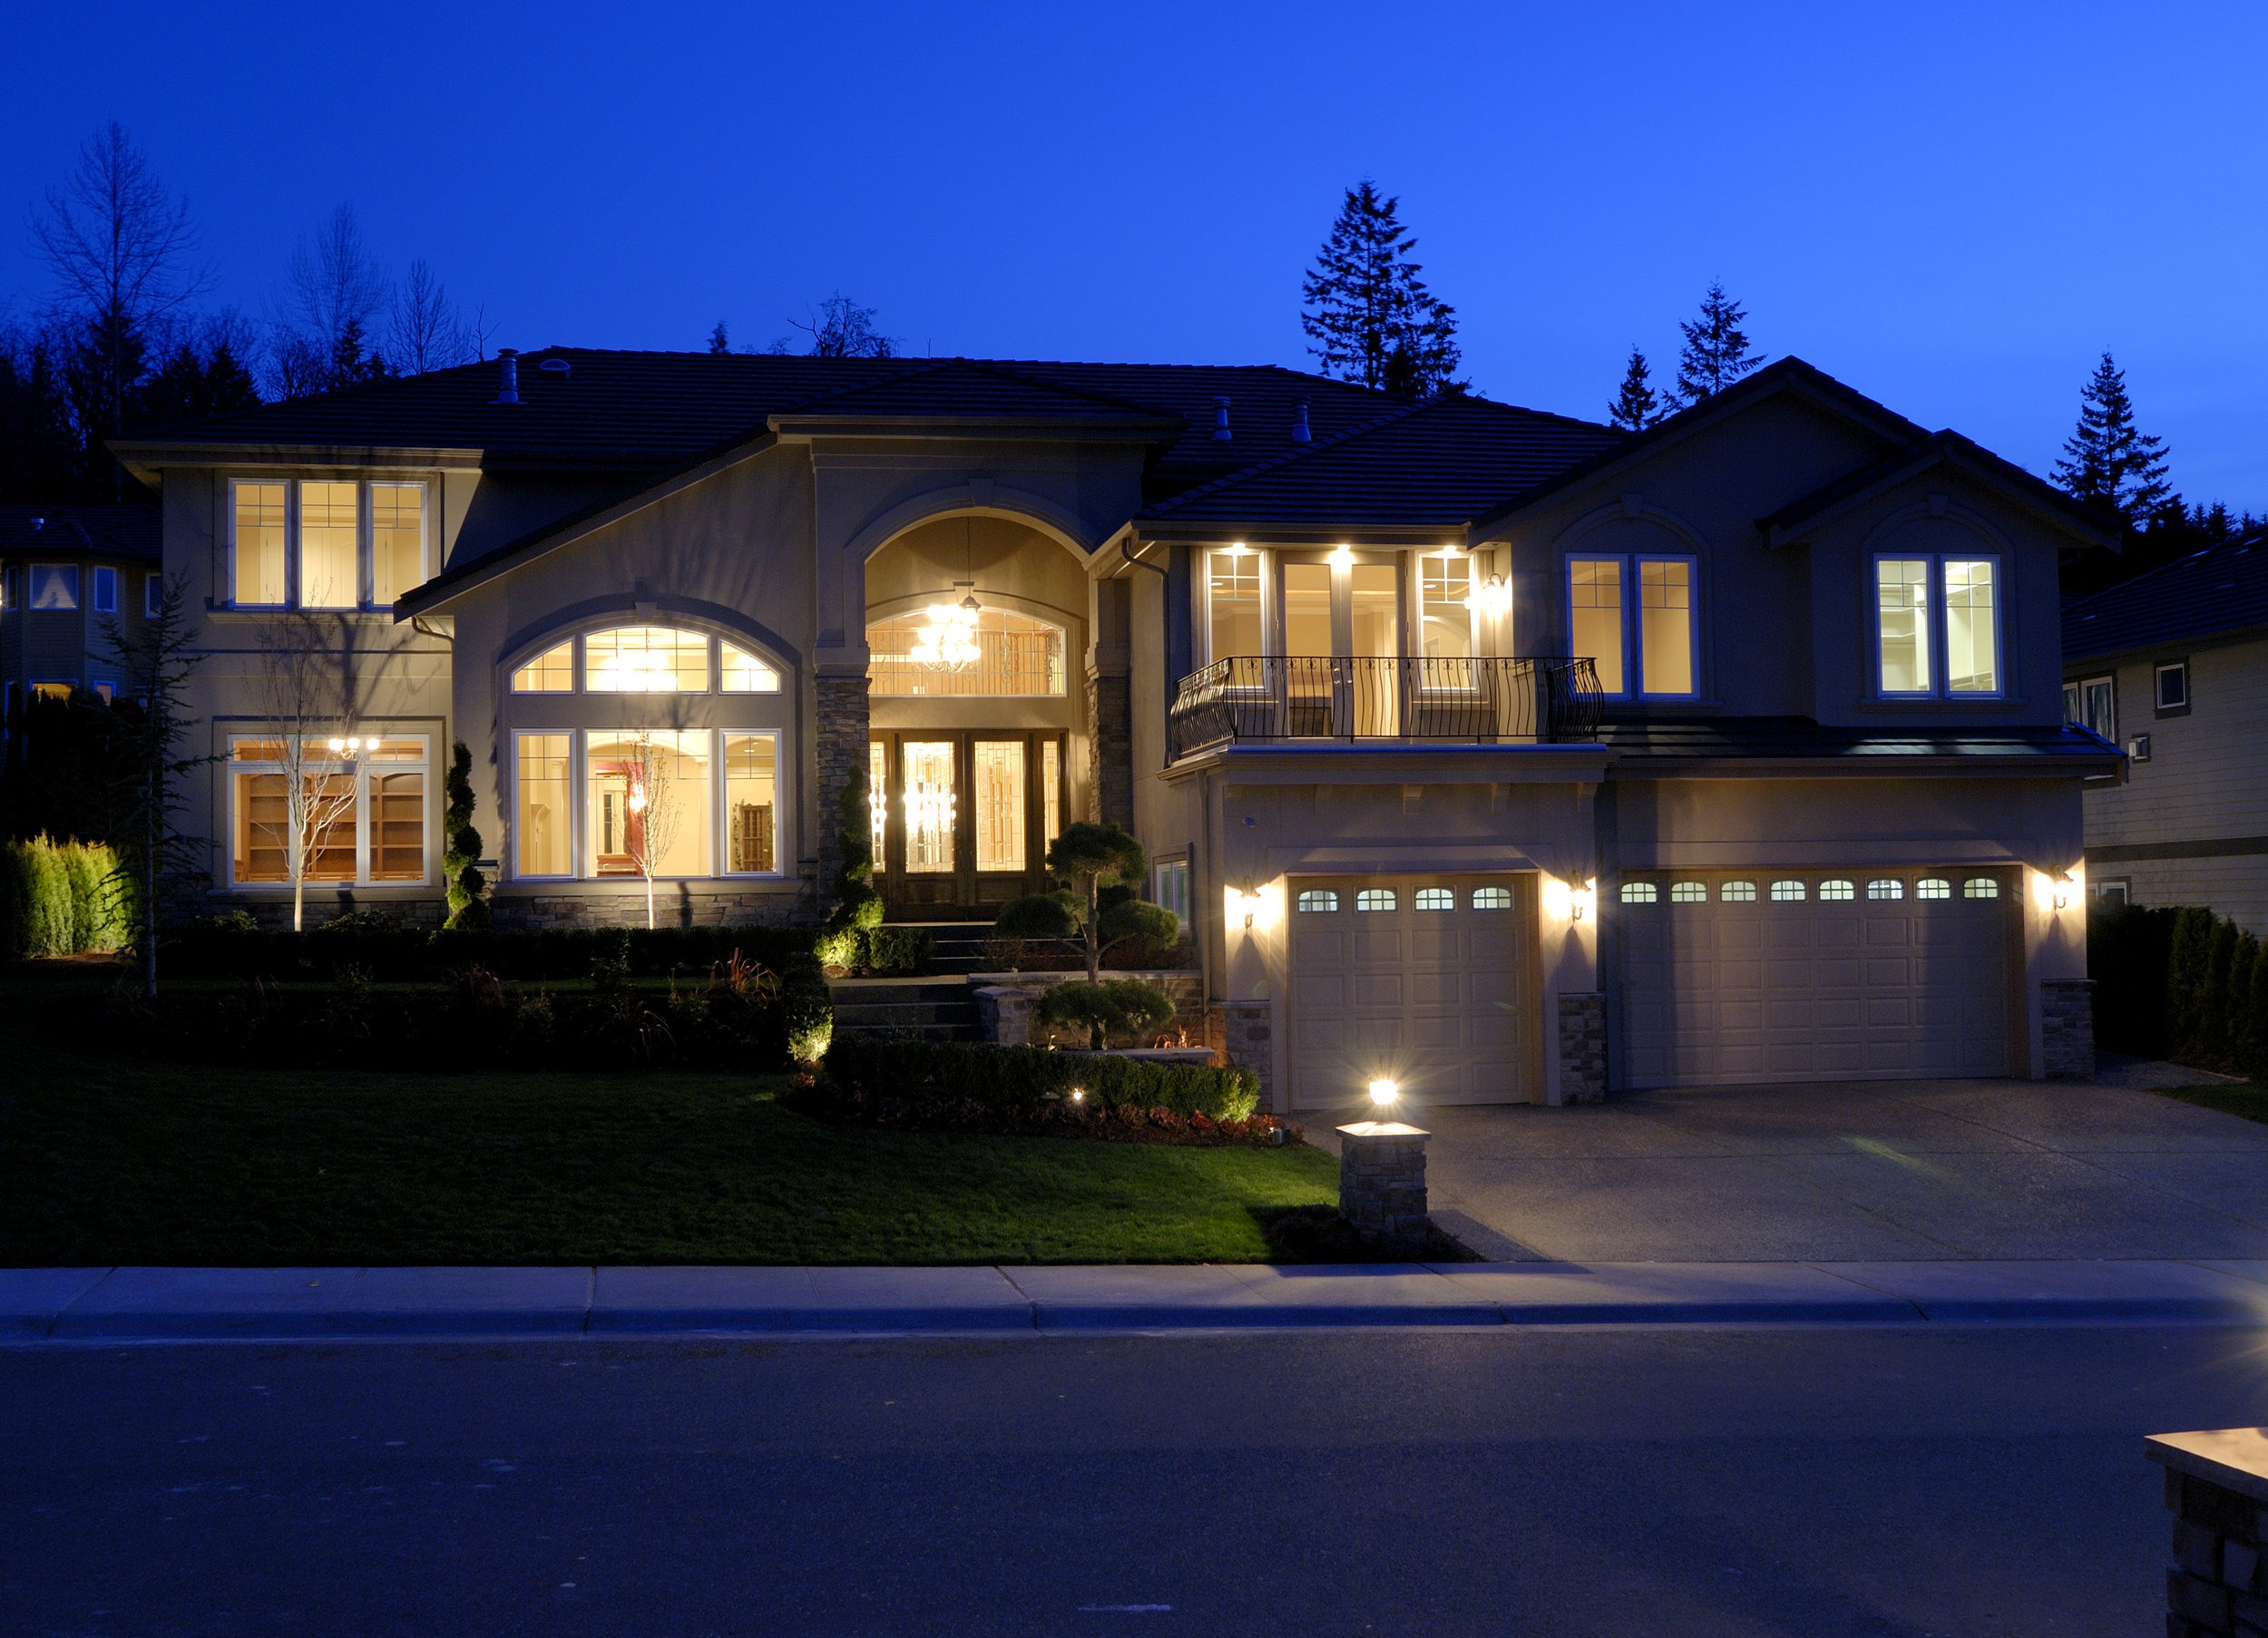 Providing Top Quality Electrical Services in Fort Saskatchewan, Alberta